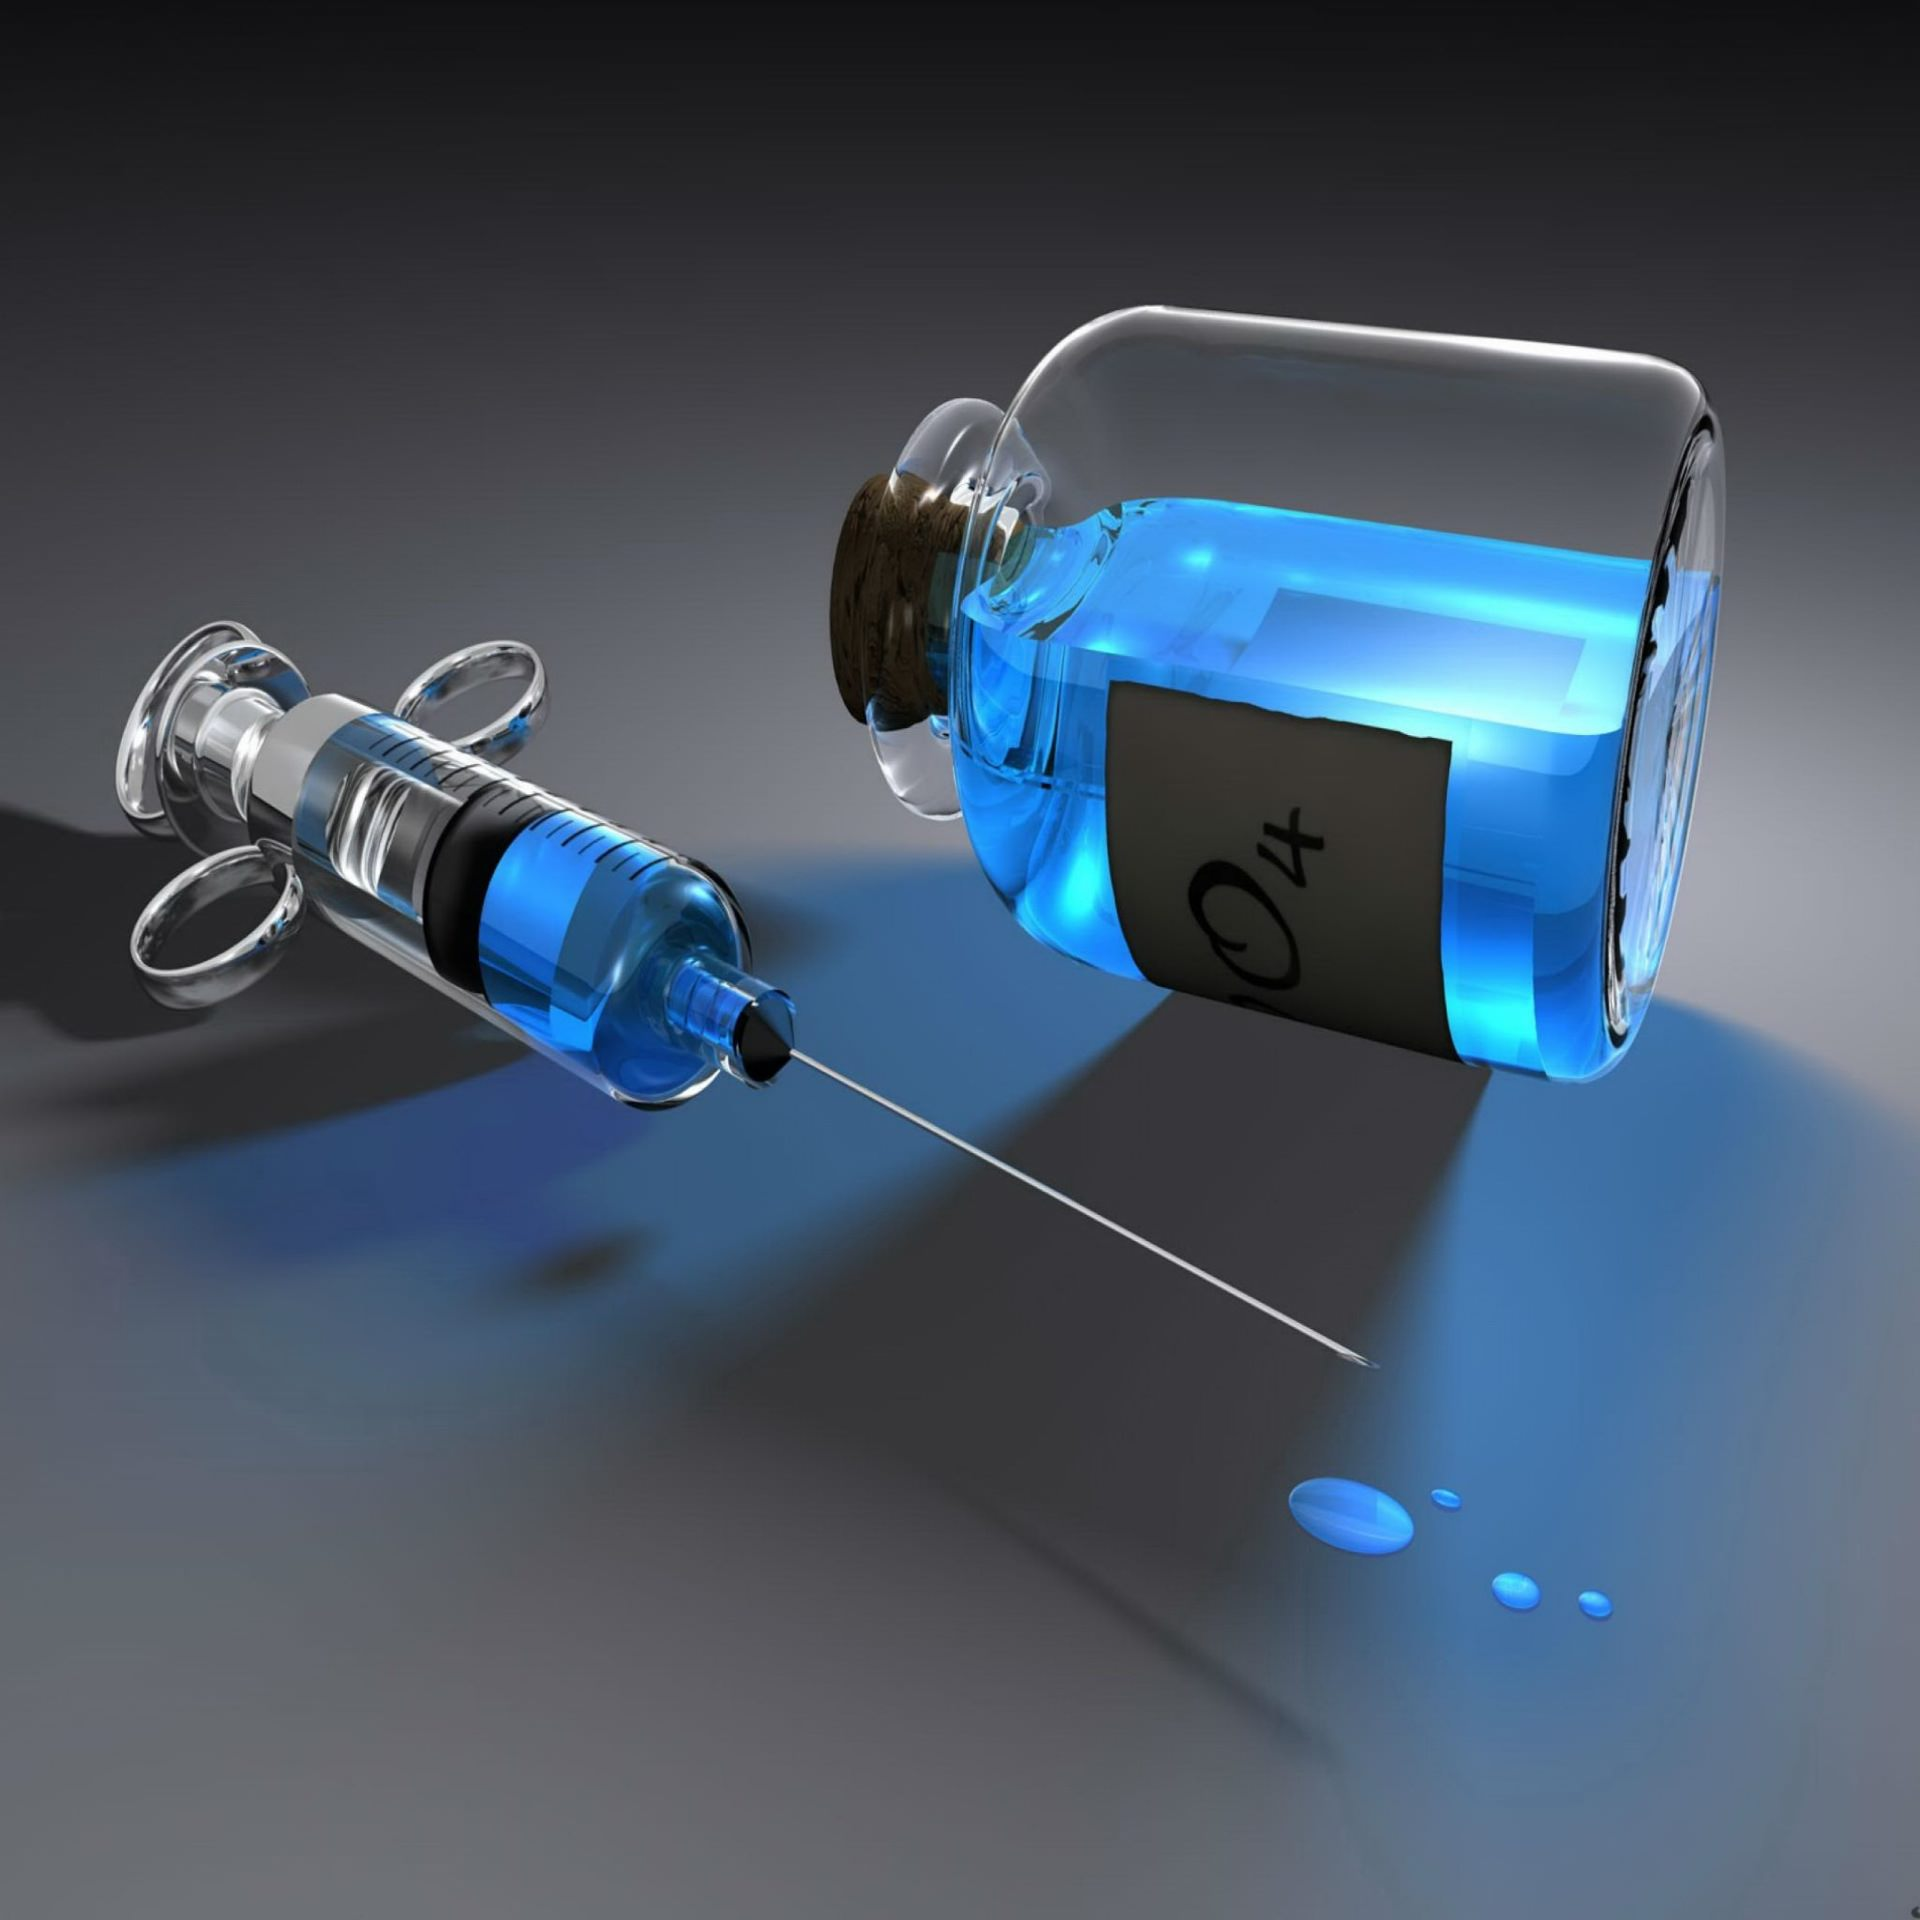 wallpaper for mens phone,product,technology,cylinder,glass,water bottle